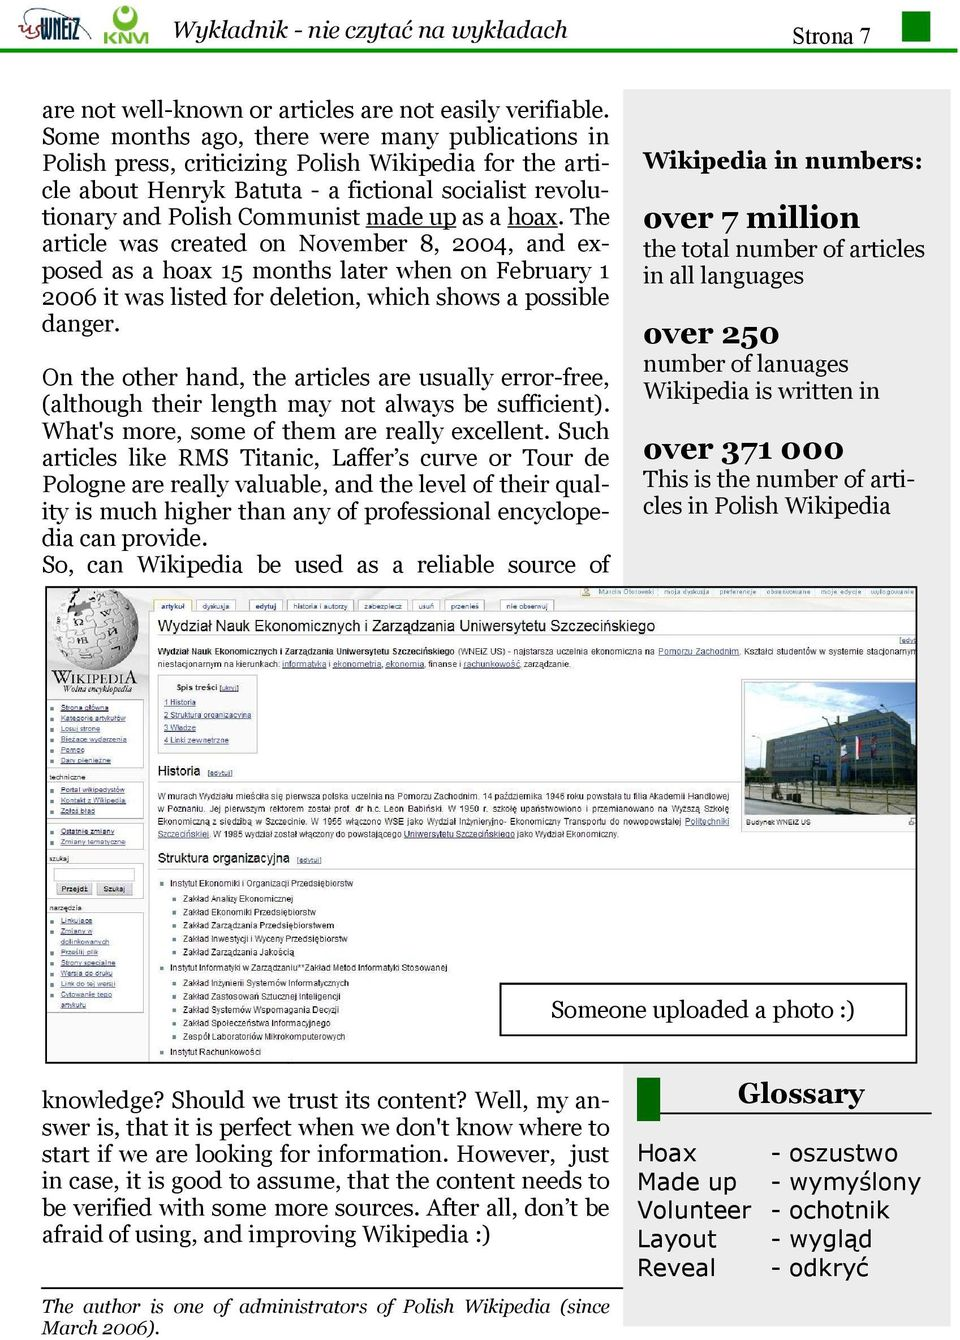 hoax. The article was created on November 8, 2004, and exposed as a hoax 15 months later when on February 1 2006 it was listed for deletion, which shows a possible danger.